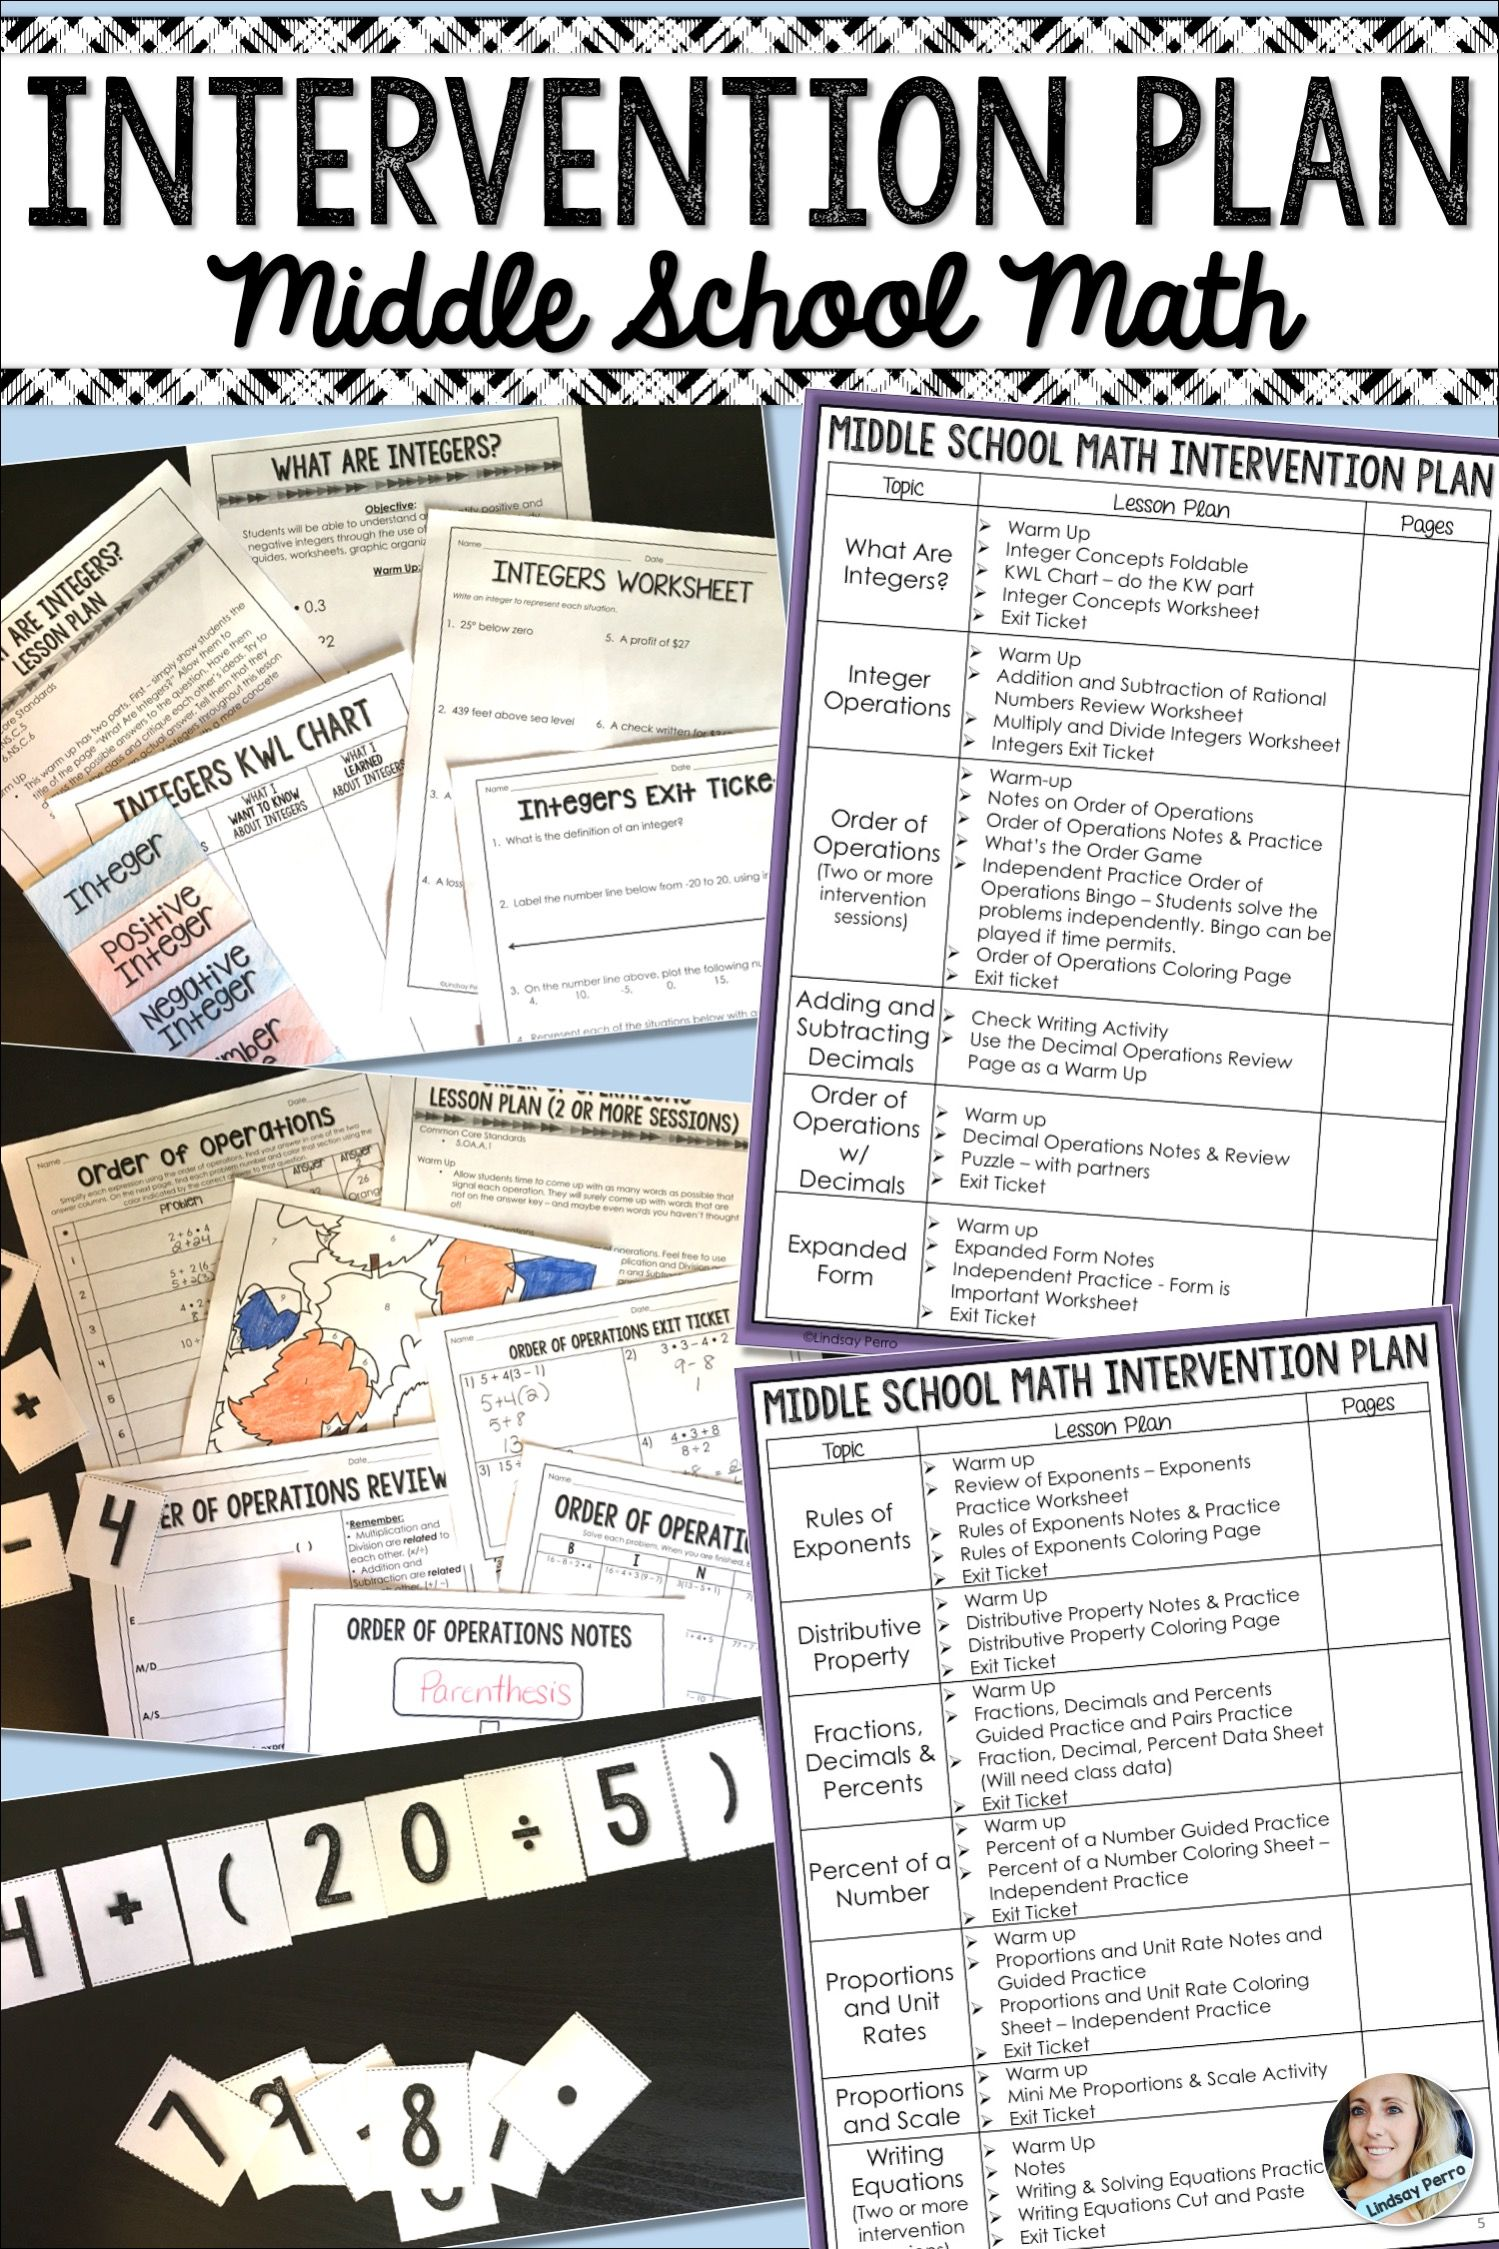 math intervention plan middle school common core middle school math resources and activities. Black Bedroom Furniture Sets. Home Design Ideas